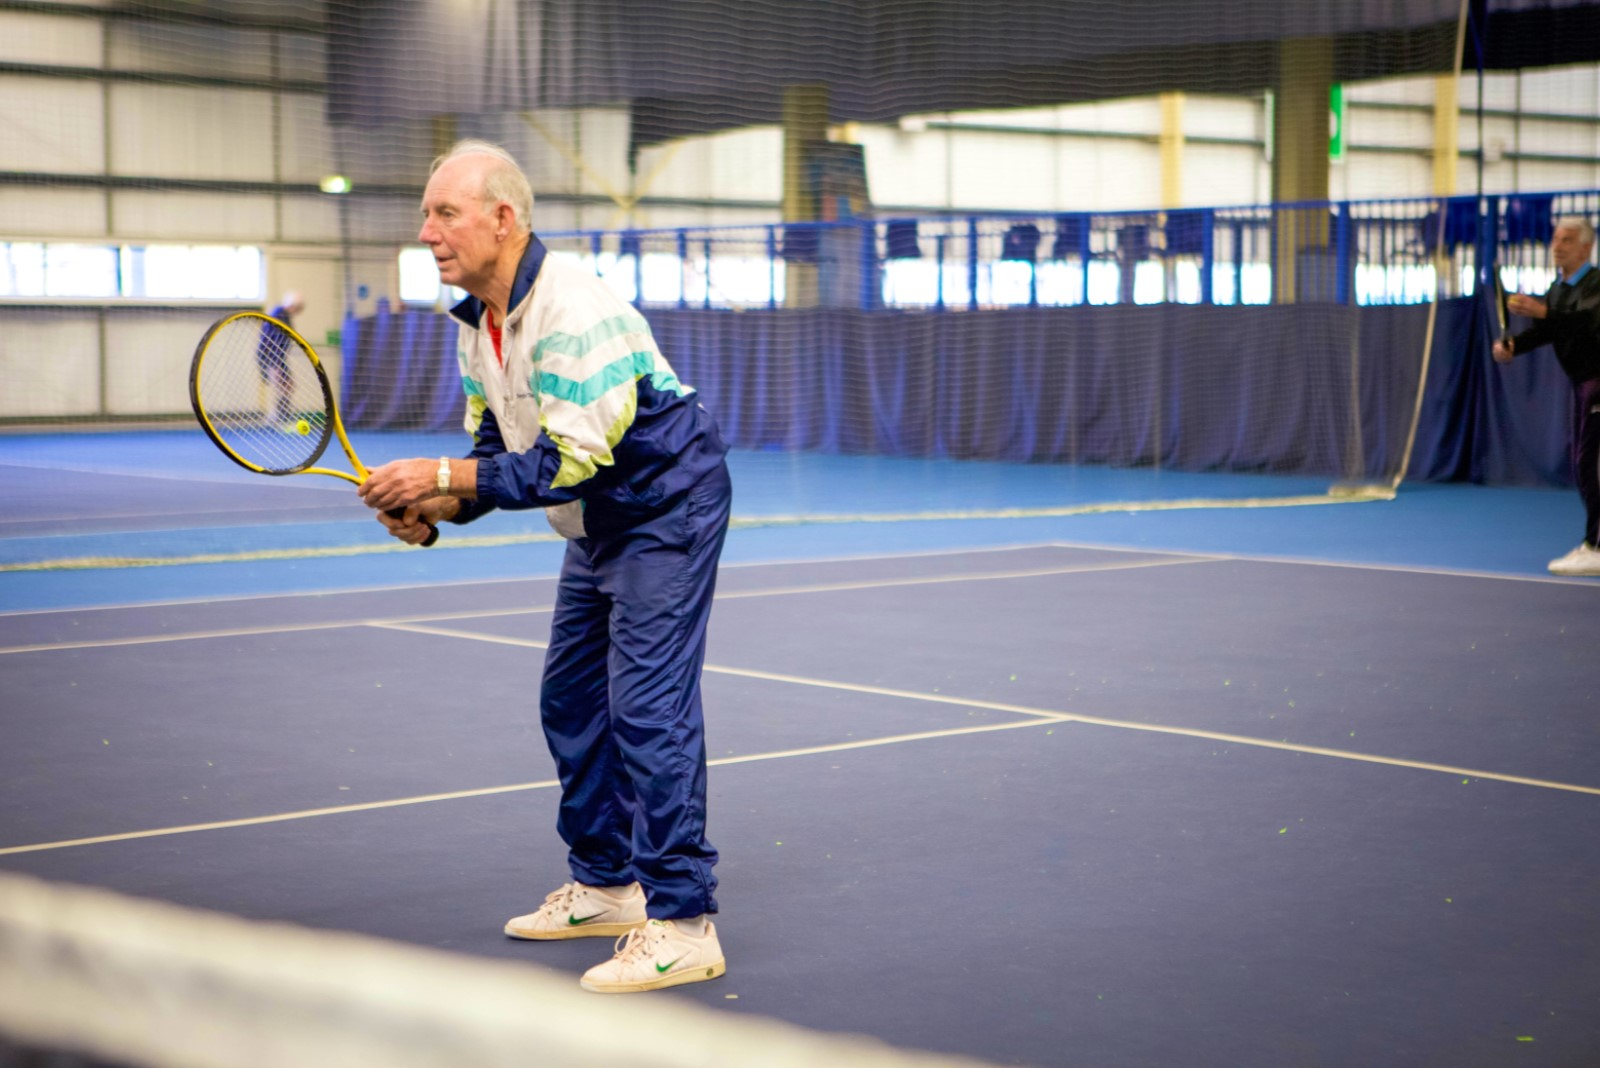 man in tracksuit holding tennis racket.jpg